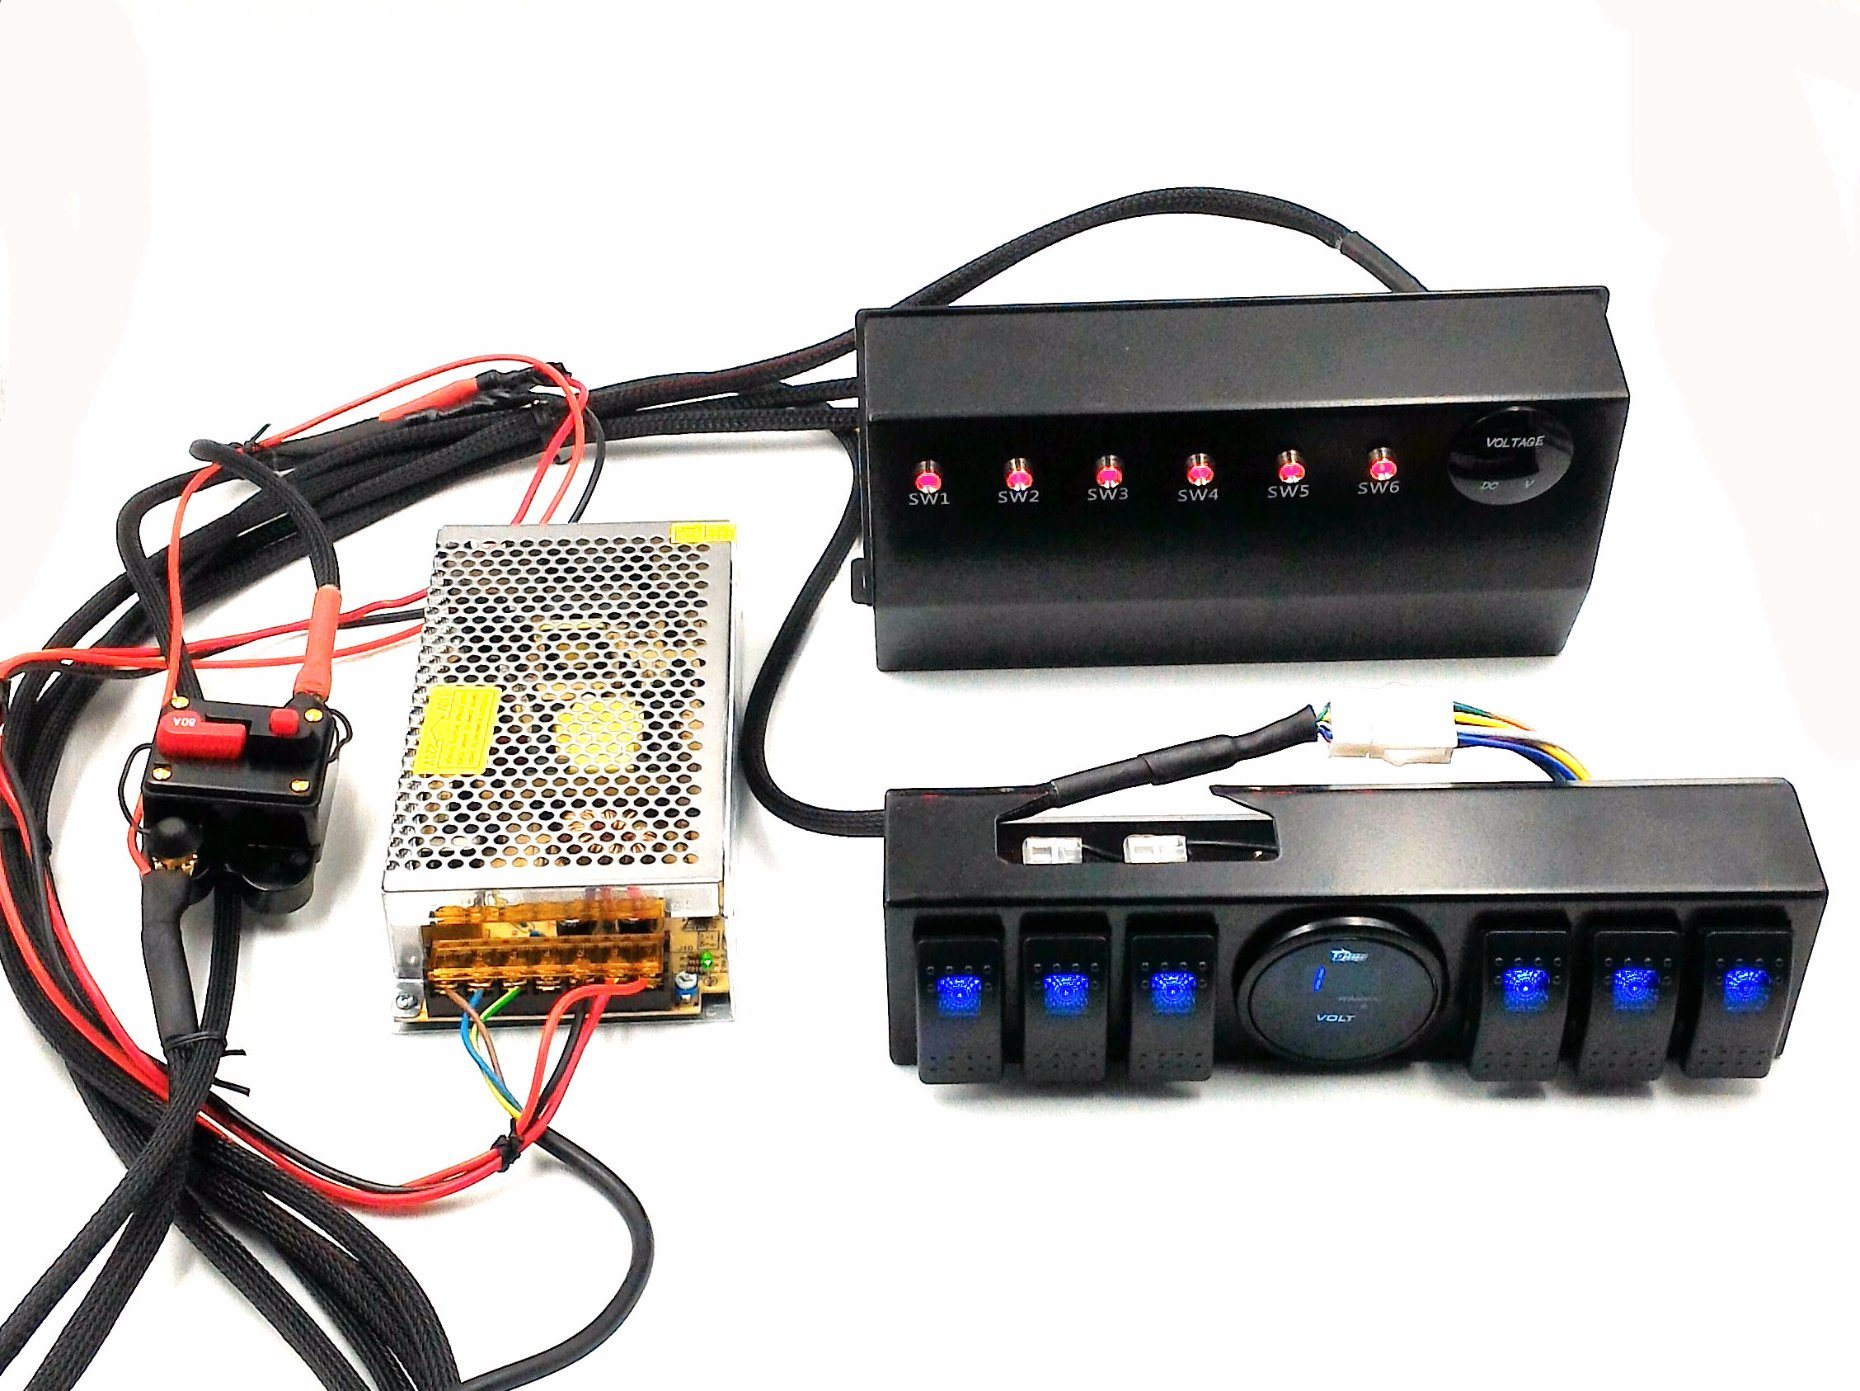 China Wrangler Jk 6Switch Panel with Control and Source System